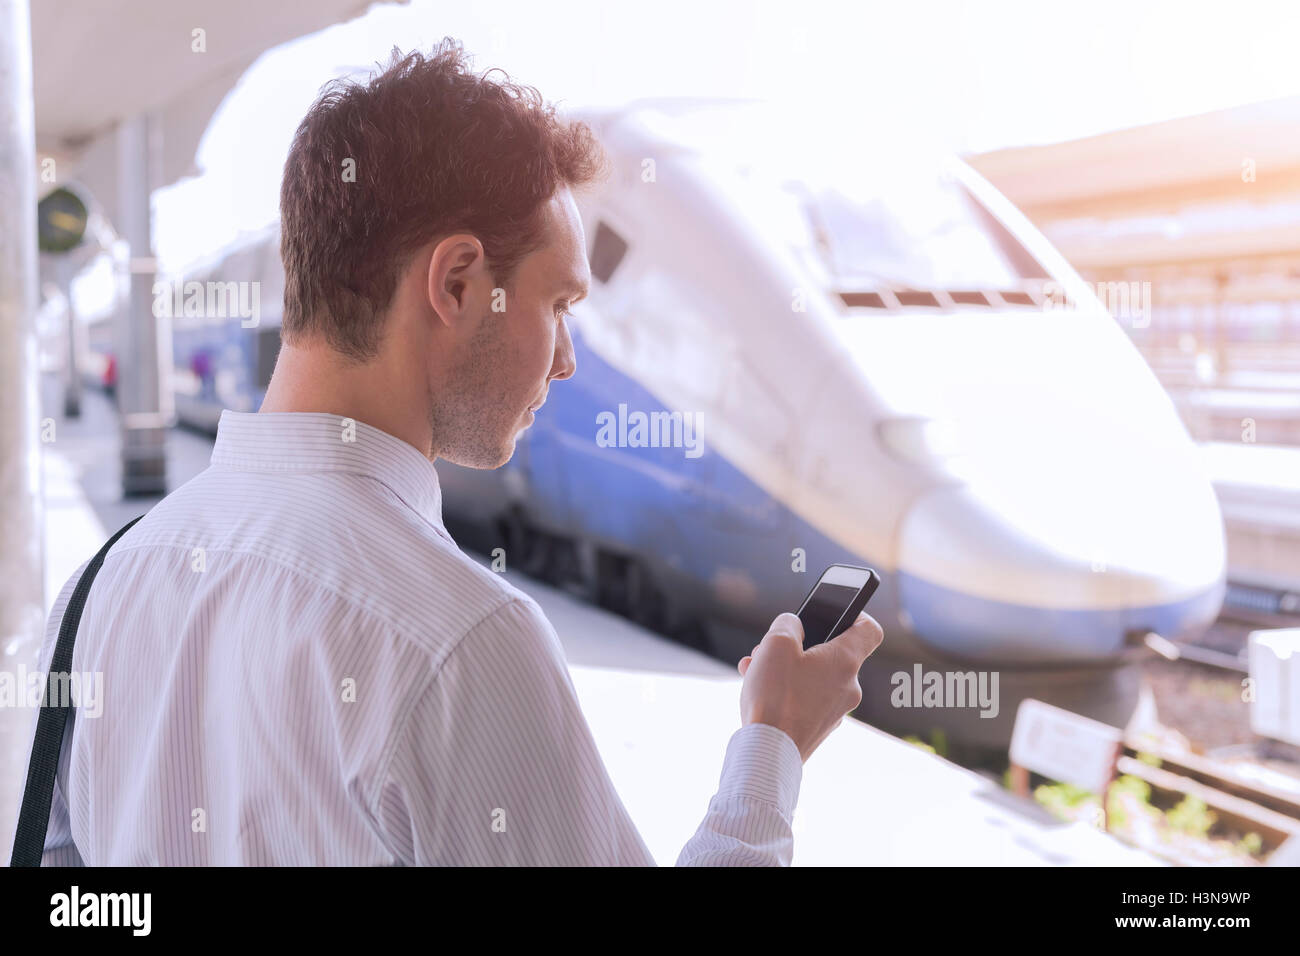 Young adult male using app on smartphone during business travel with train in background - Stock Image